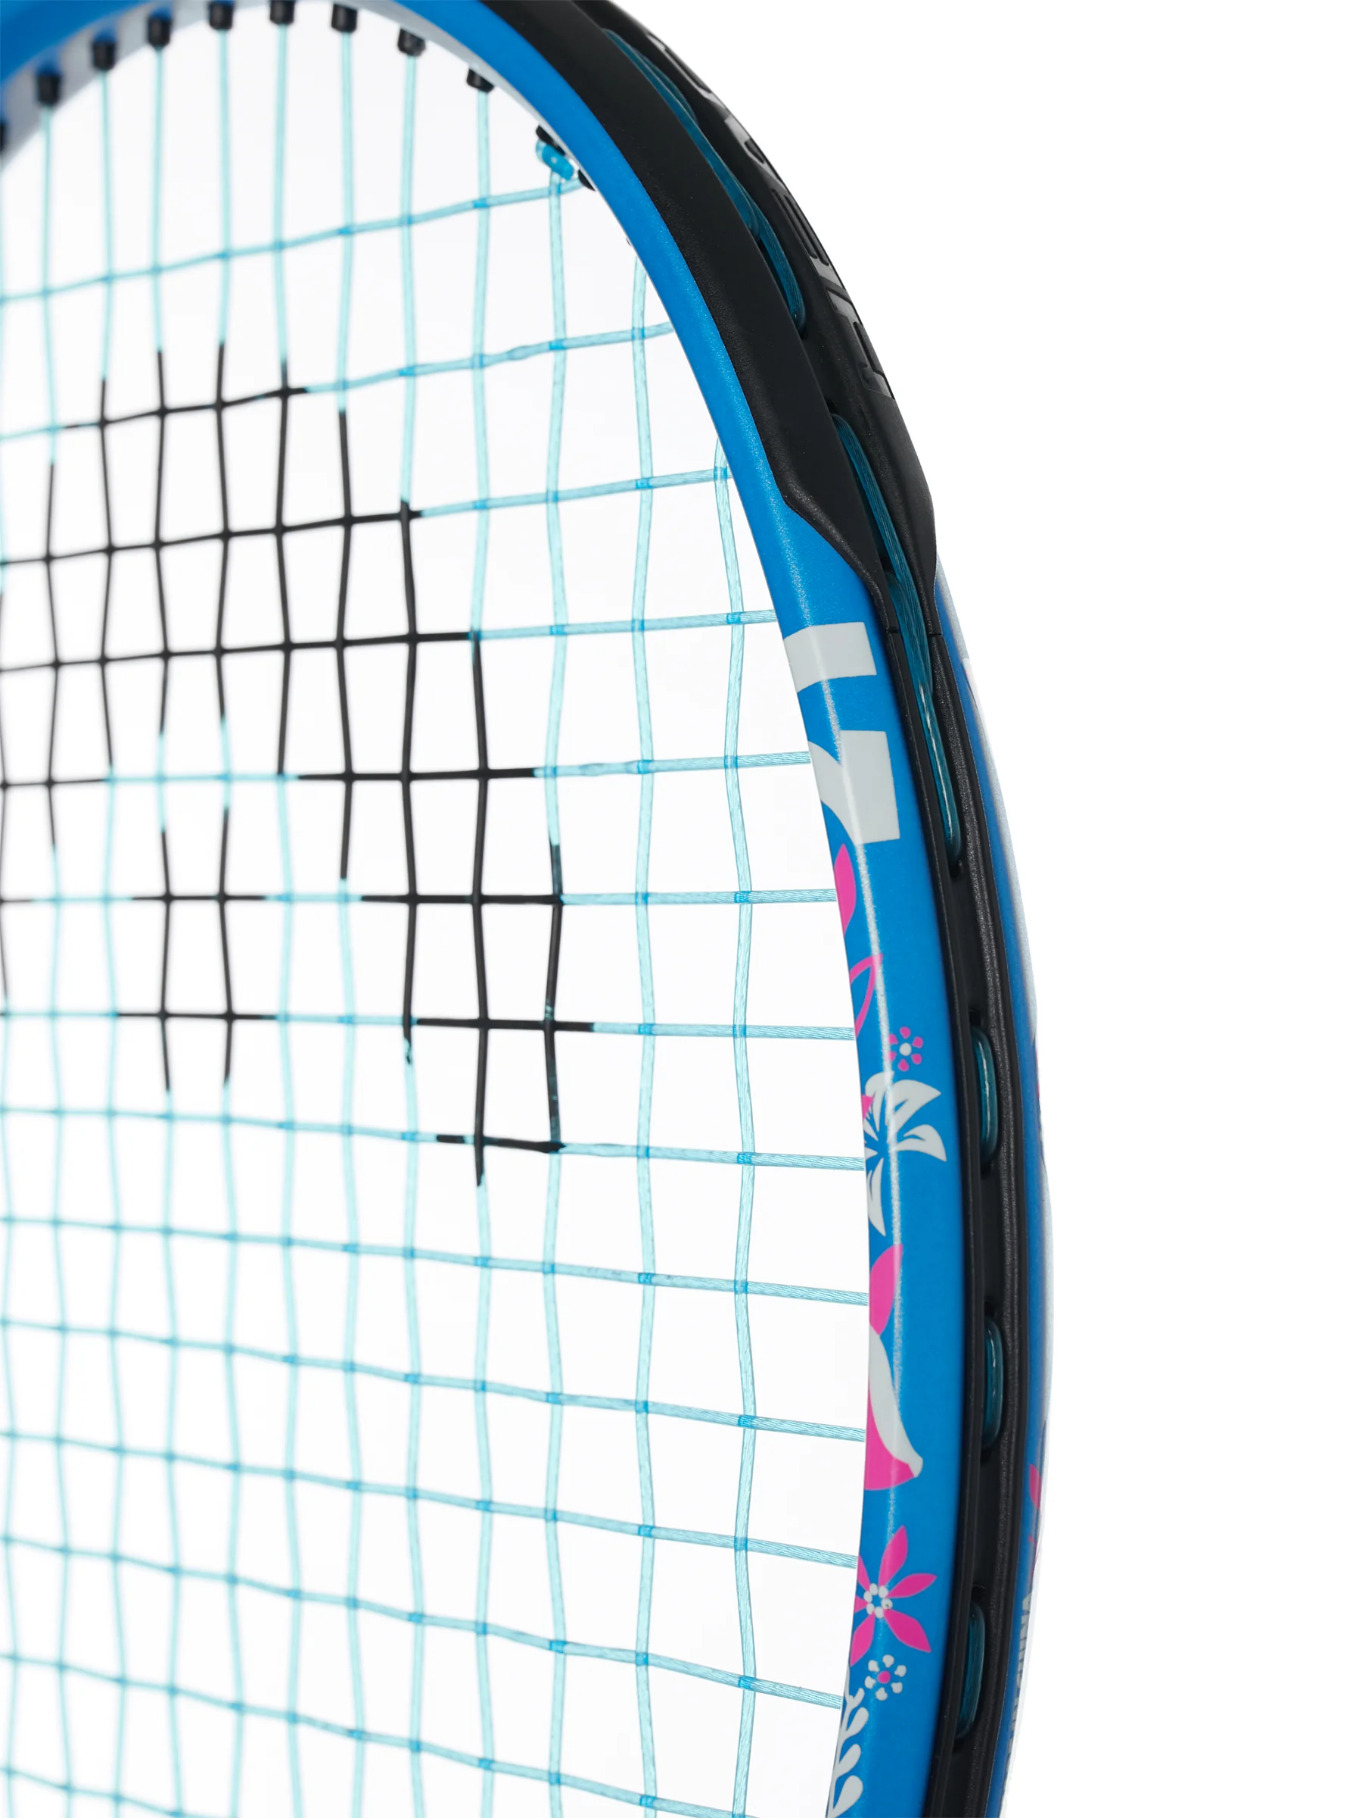 Head Instinct 21 Inch Junior Racquet For Kids - Ages 5-6 Years